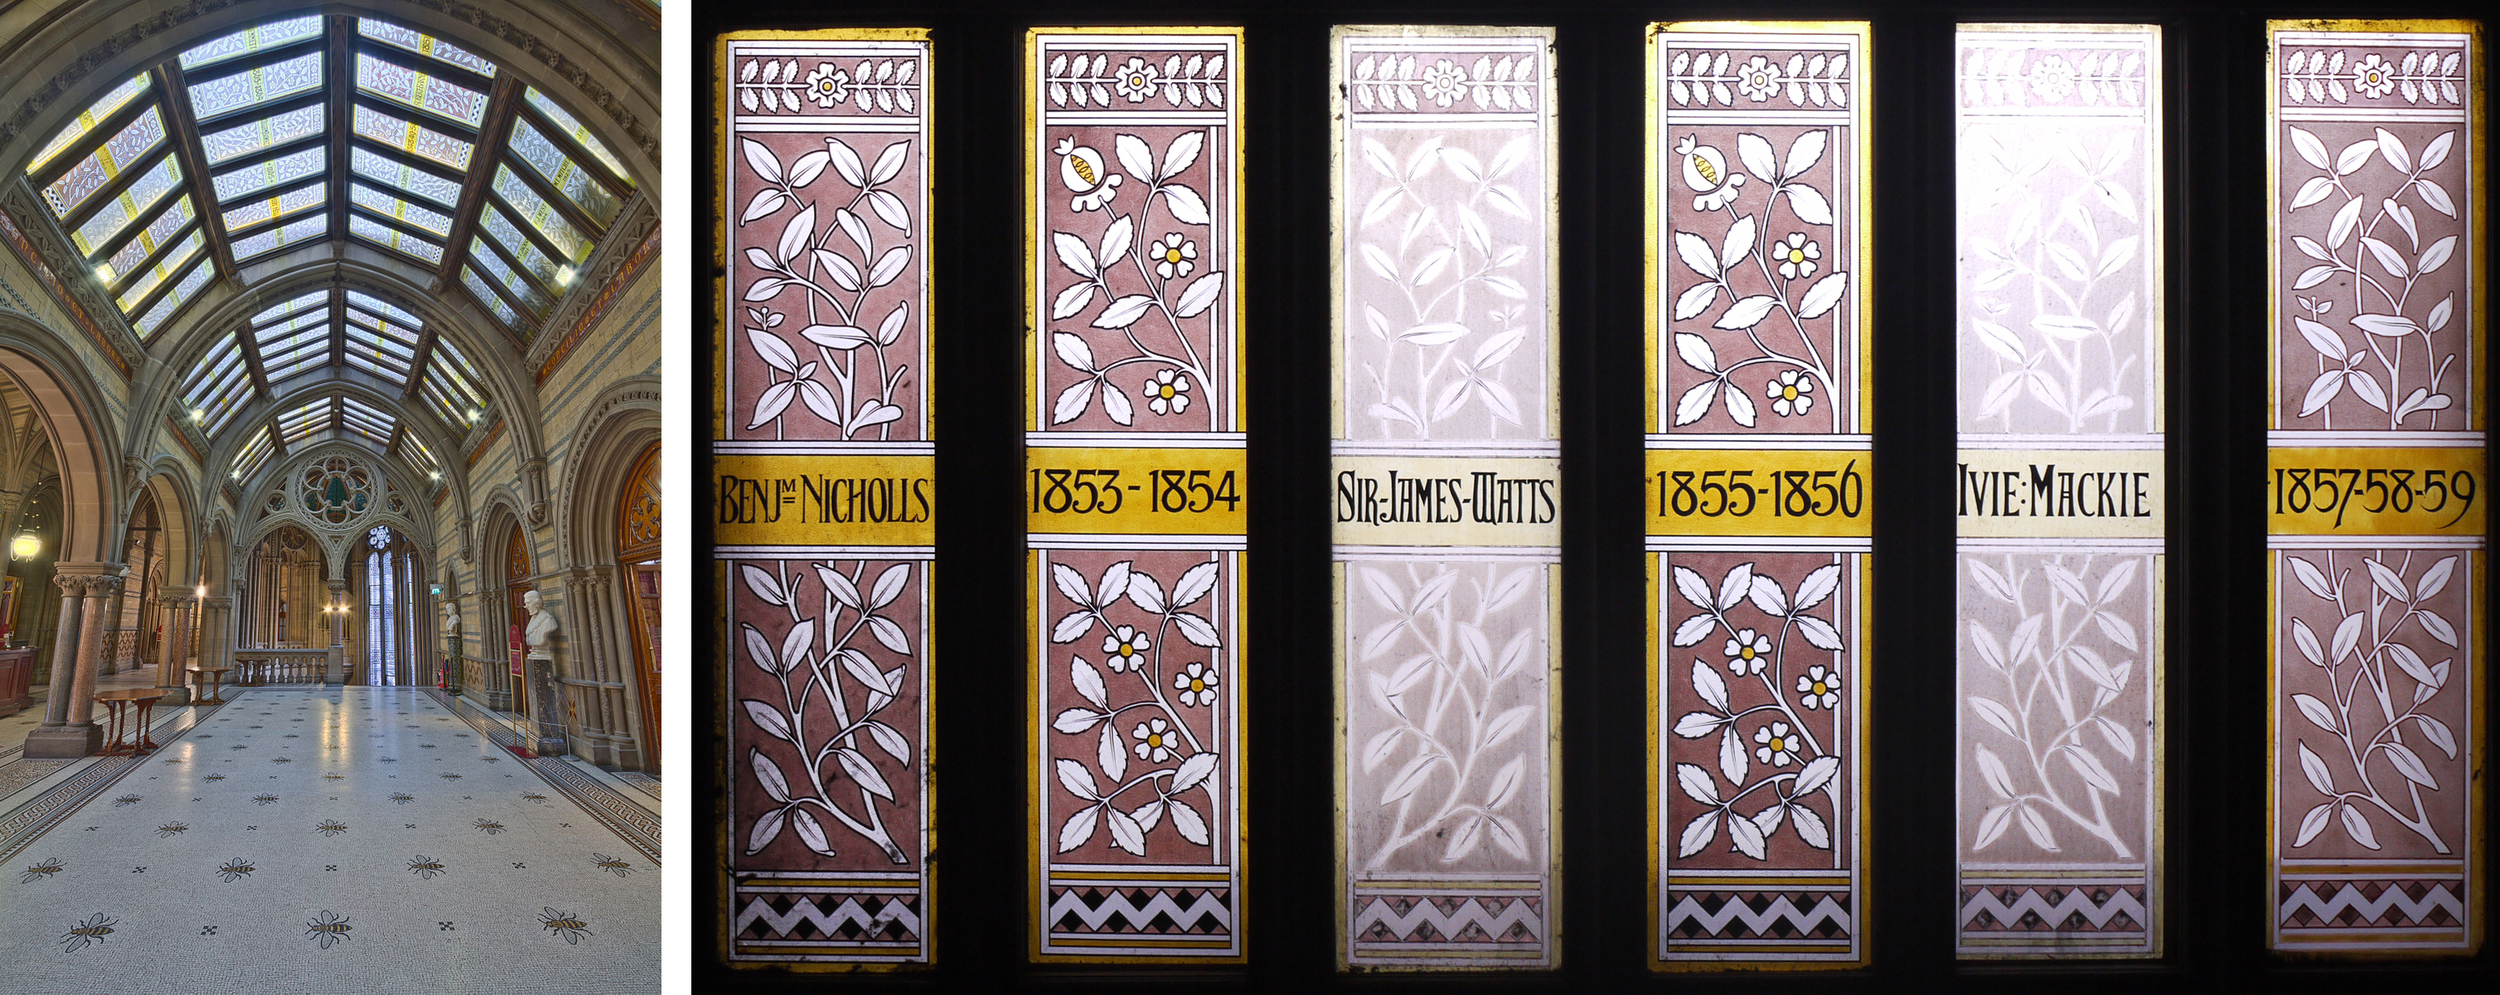 Great Hall Foyer, photo by Michael D. Beckwith.  Block of 6 stained glass panels.